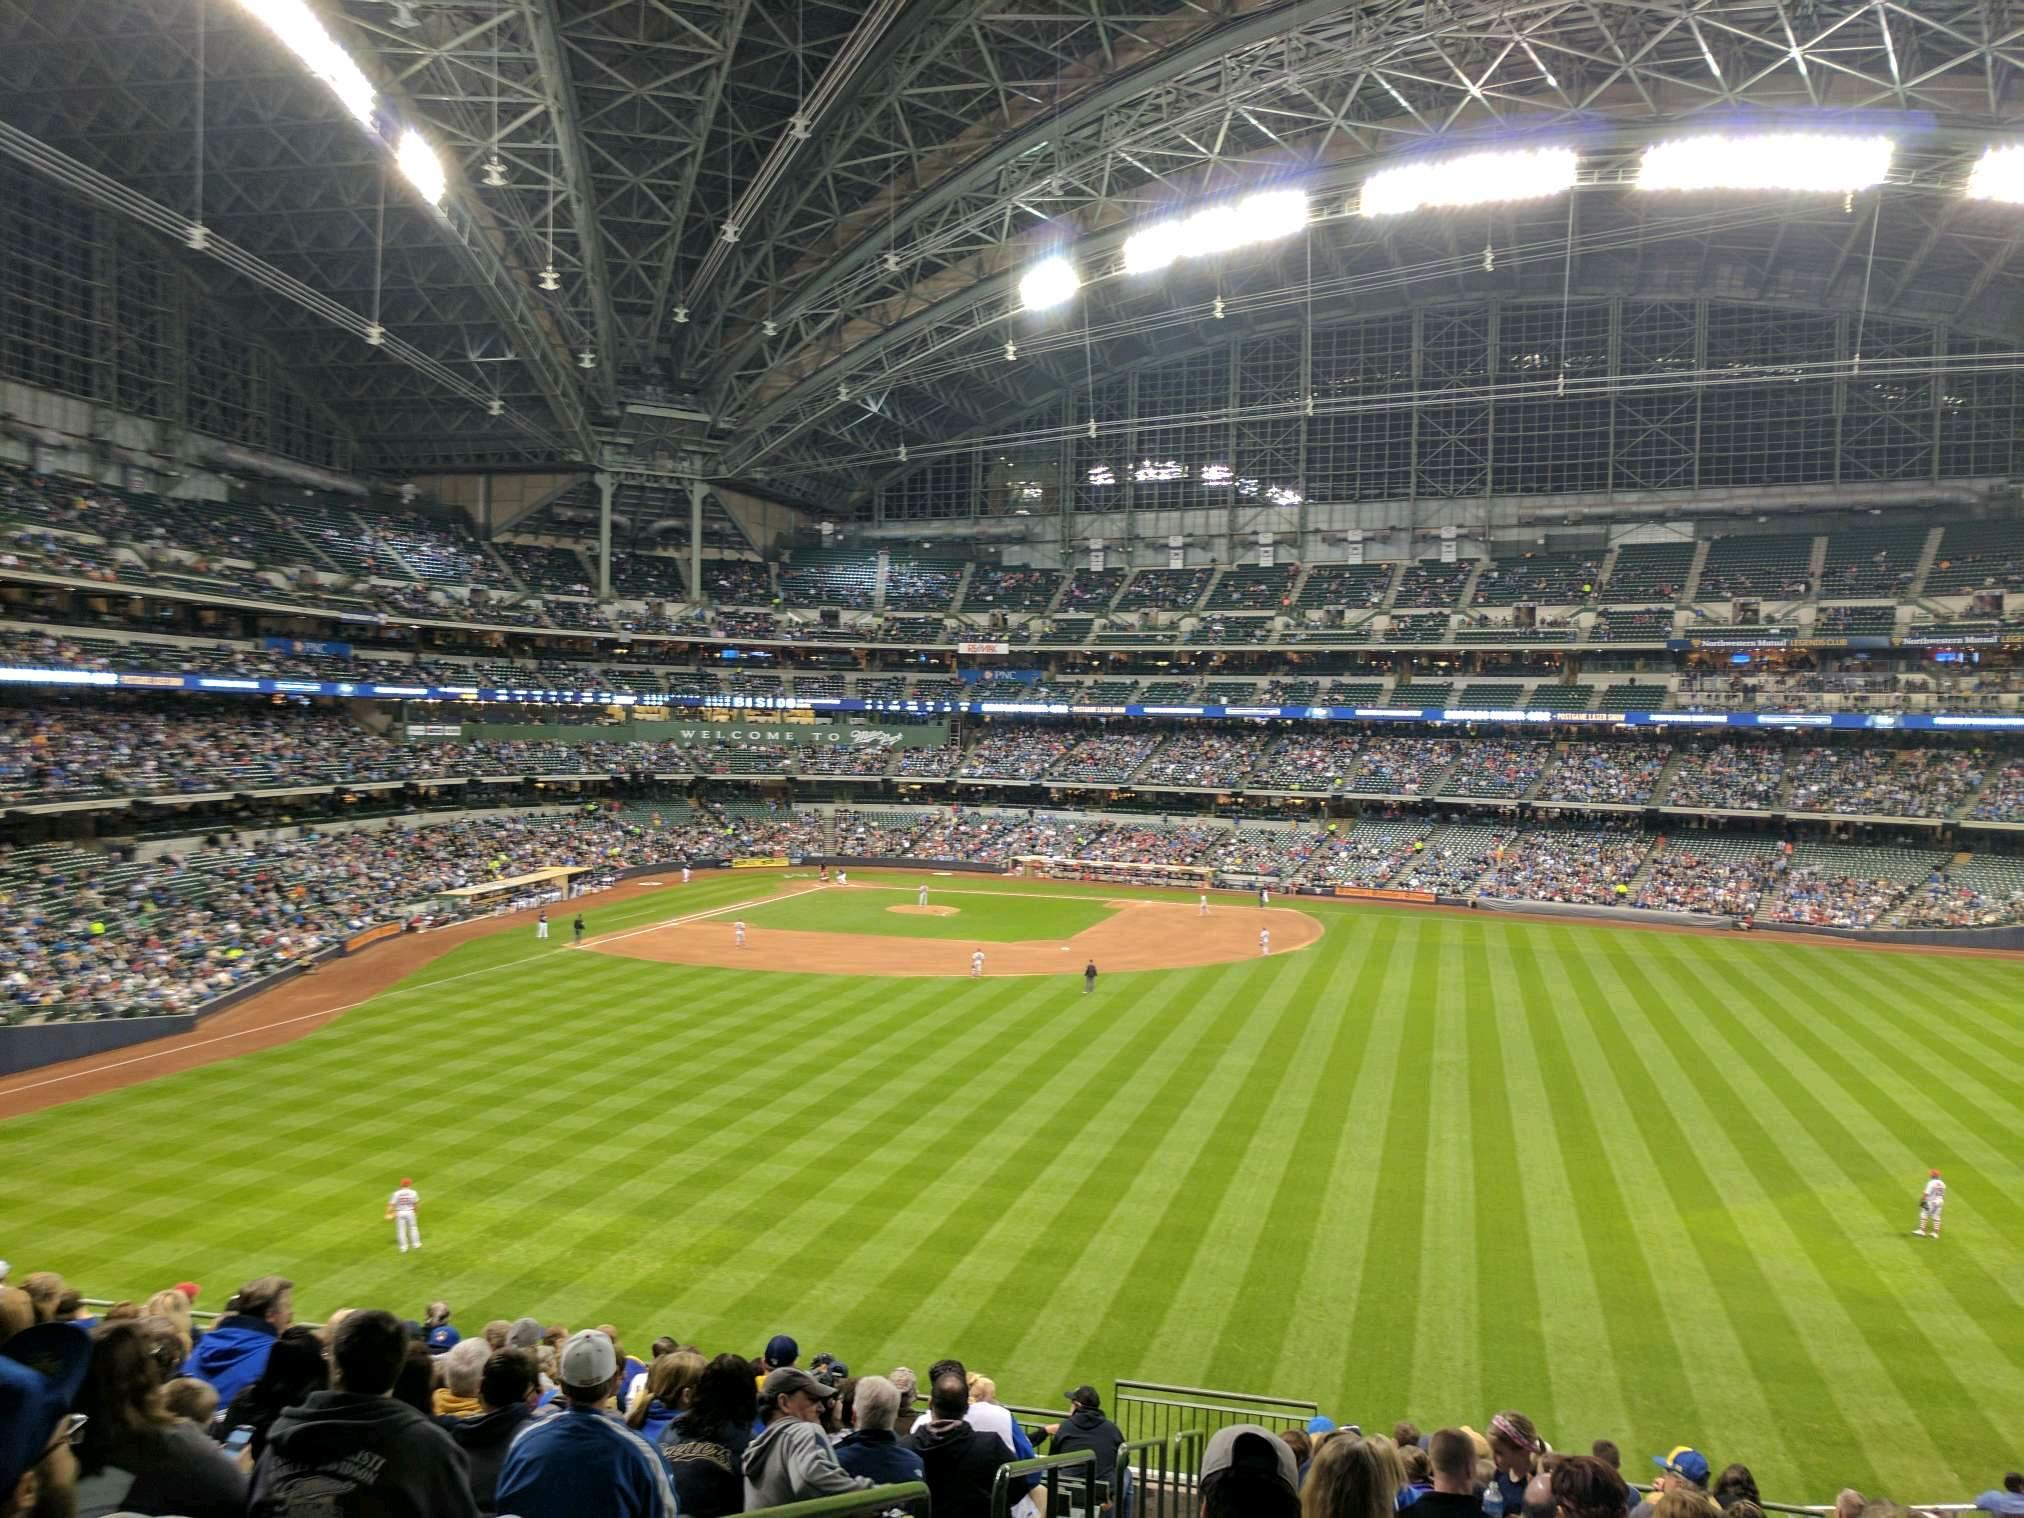 Miller Park Section 201 Row 14 Seat 1